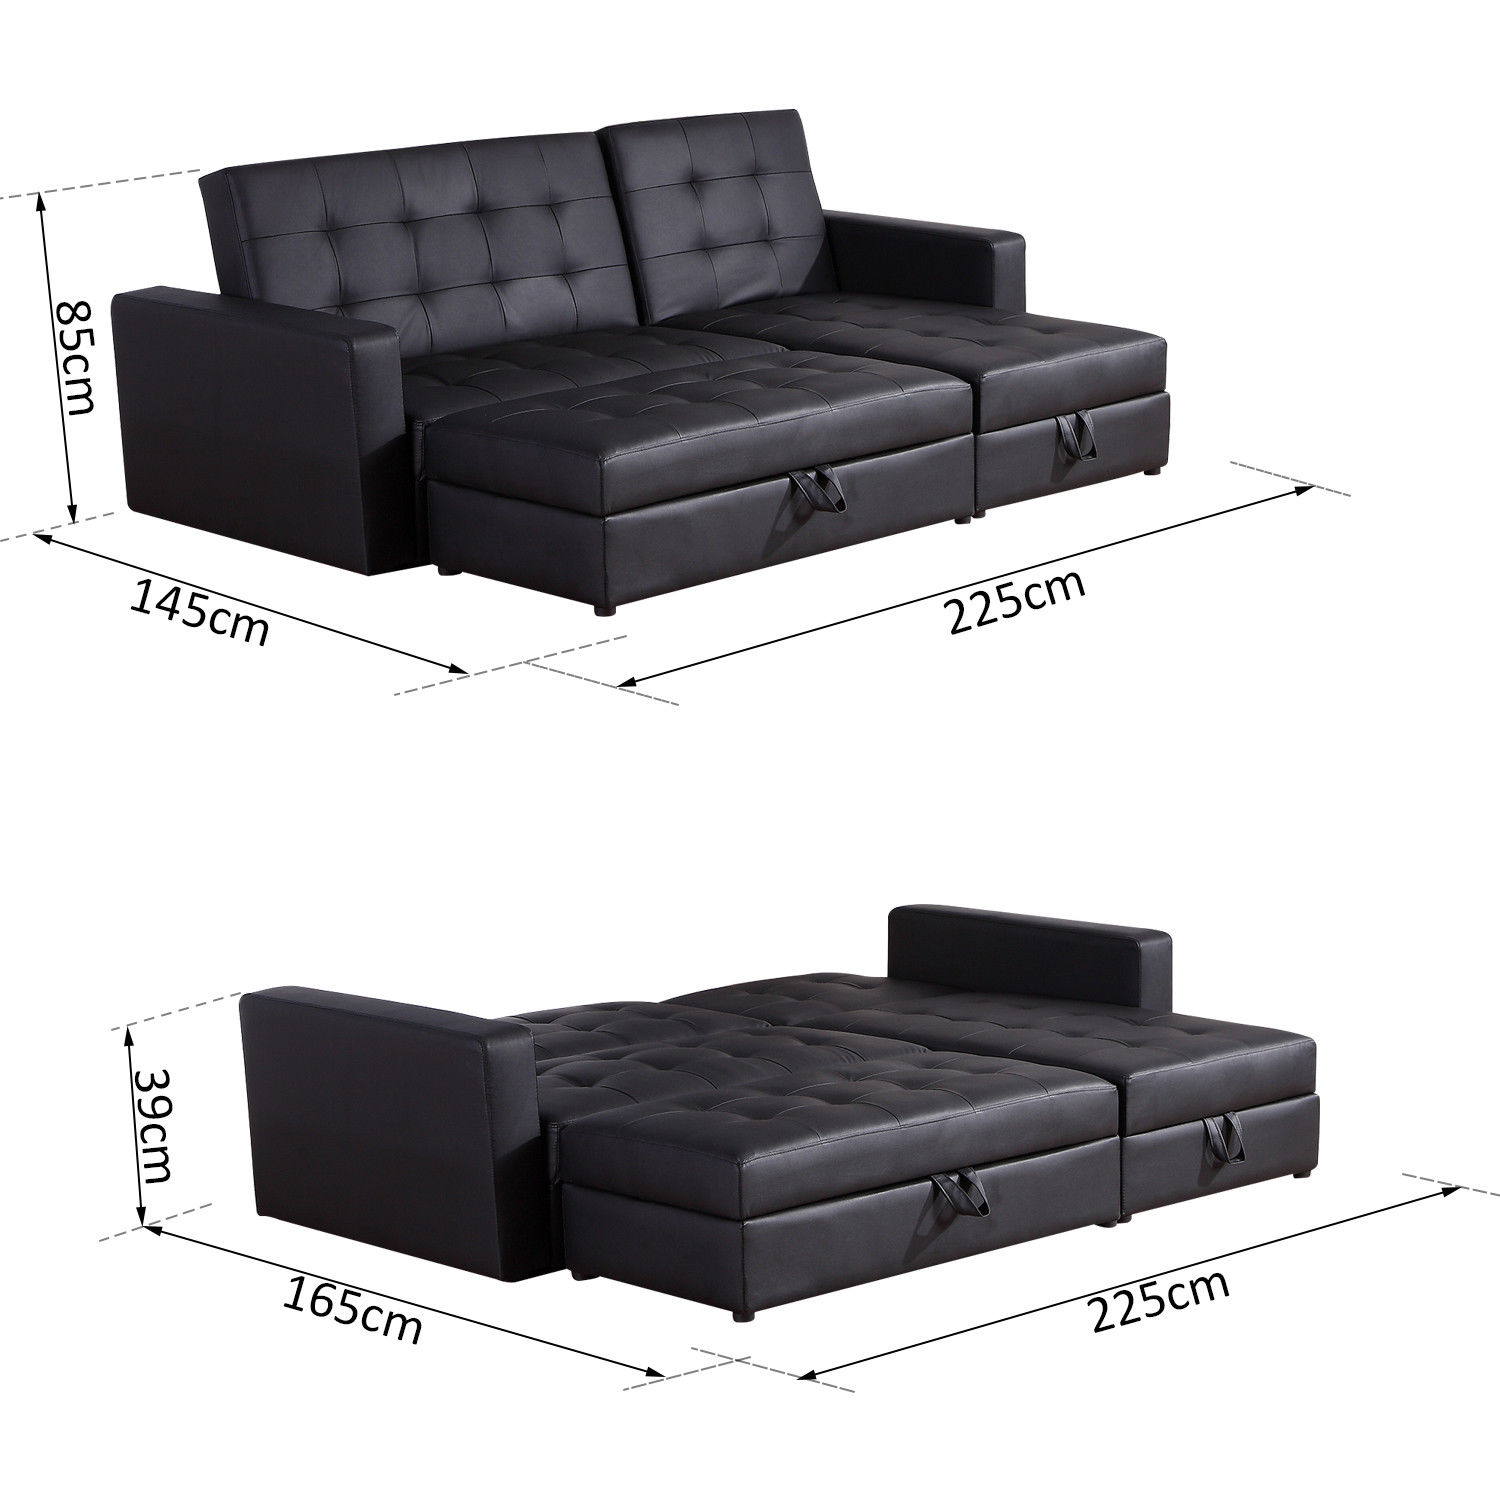 edmonton bed store chaise mazin stationary pull products sectional out furniture sofa with